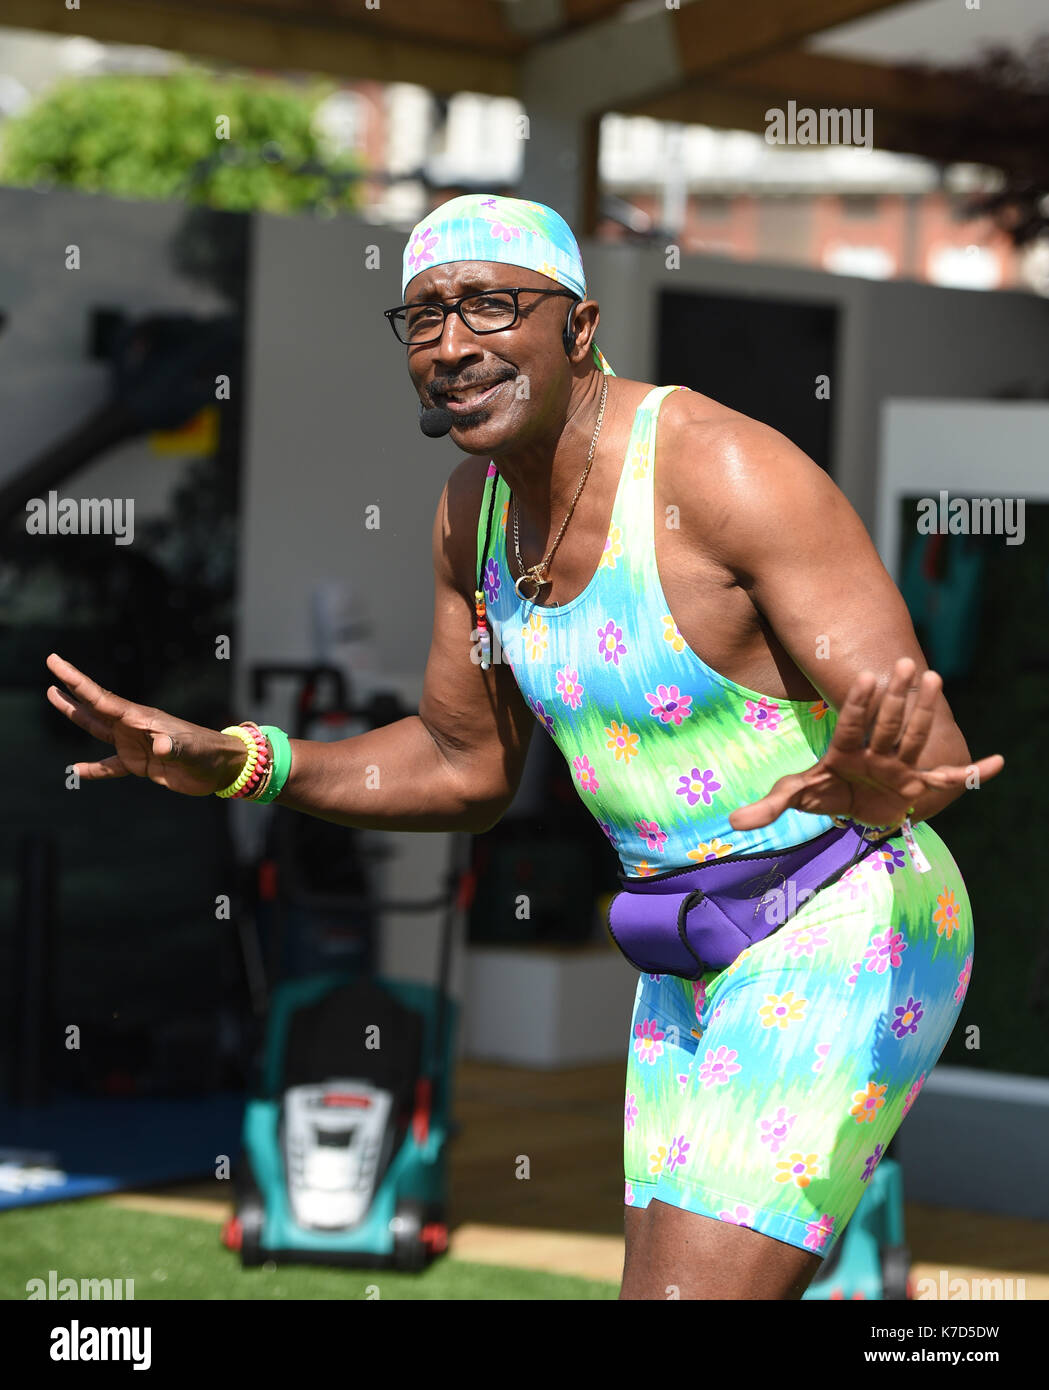 Mr Motivator Aka Derrick Evans High Resolution Stock Photography And Images Alamy